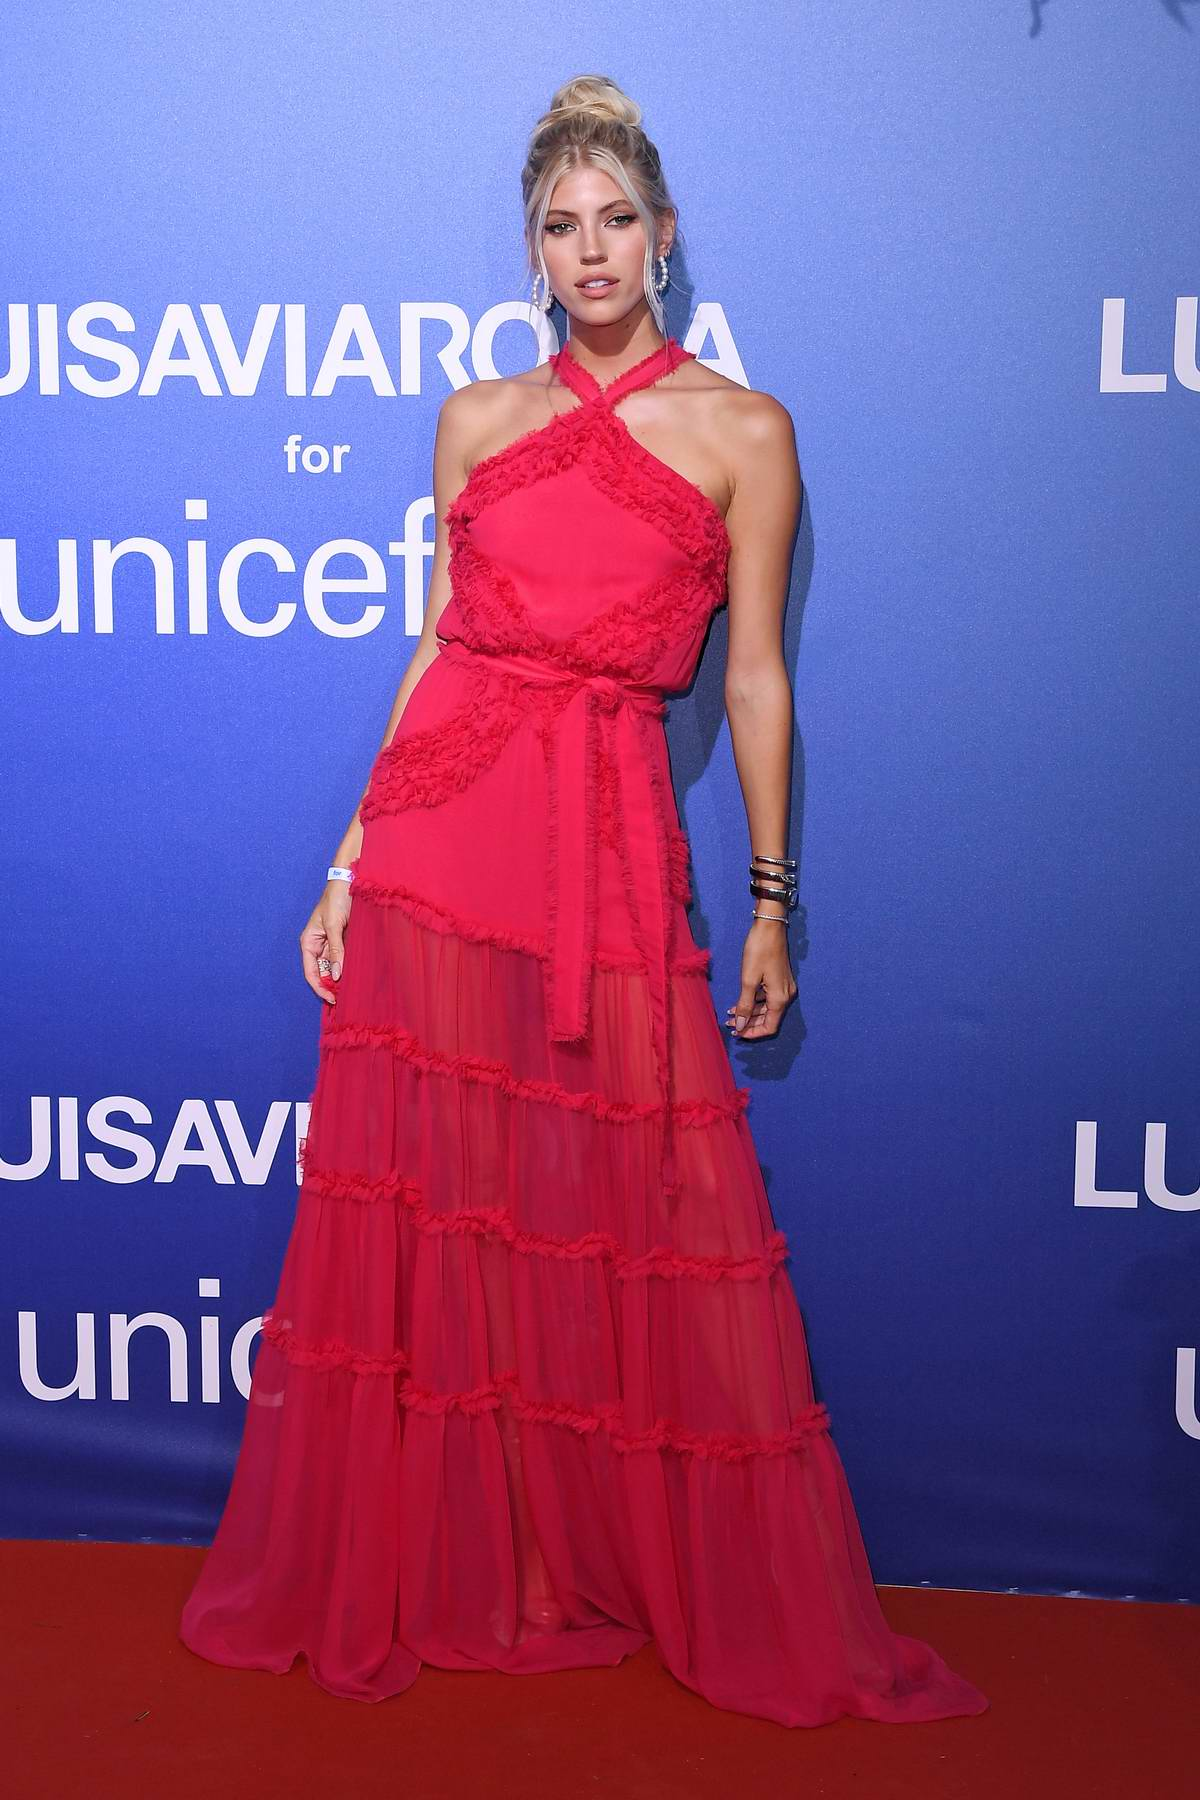 Devon Windsor attends the UNICEF Summer Gala Presented by LUISAVIAROMA in Sardinia, Italy